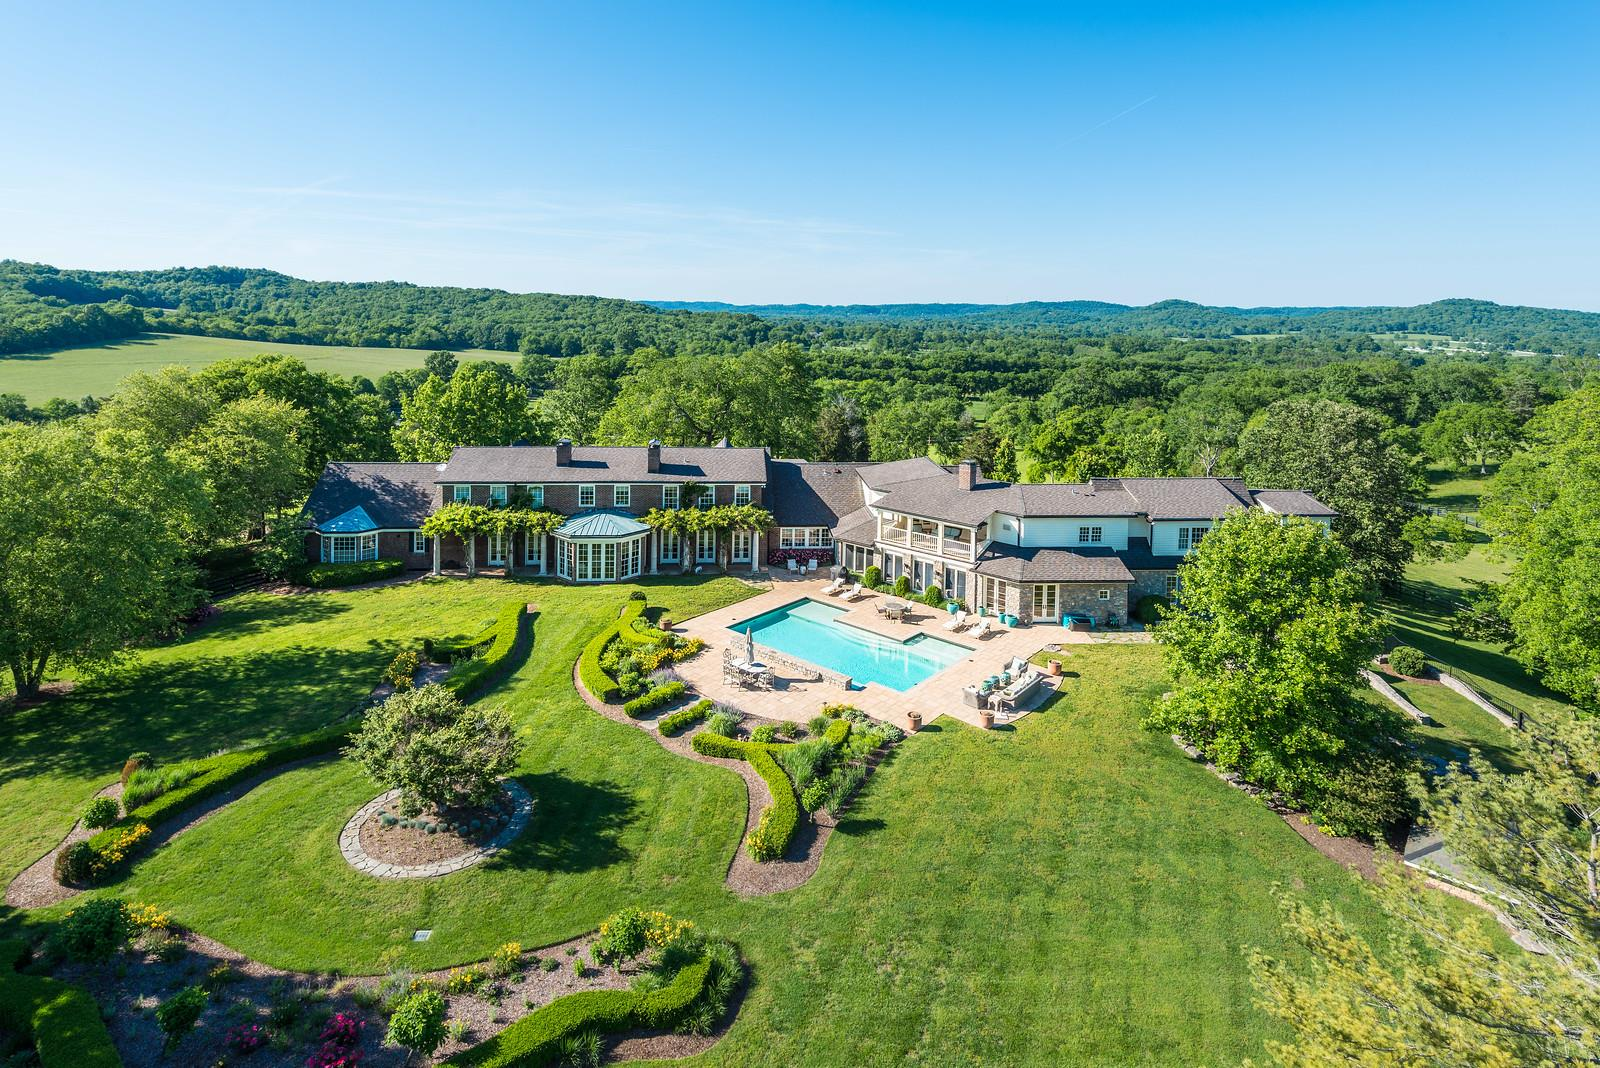 Commanding panoramic VIEWS! 46 acres.Epicenter of 'in-town' equestrian activity.1500 ft River Frontage.Expansive 10,000 sq.ft. 'Hampton's Style' brick Main Residence.Retreat to Guest/Bluff house.'Pool House',Screened Porch,Outbuildings.